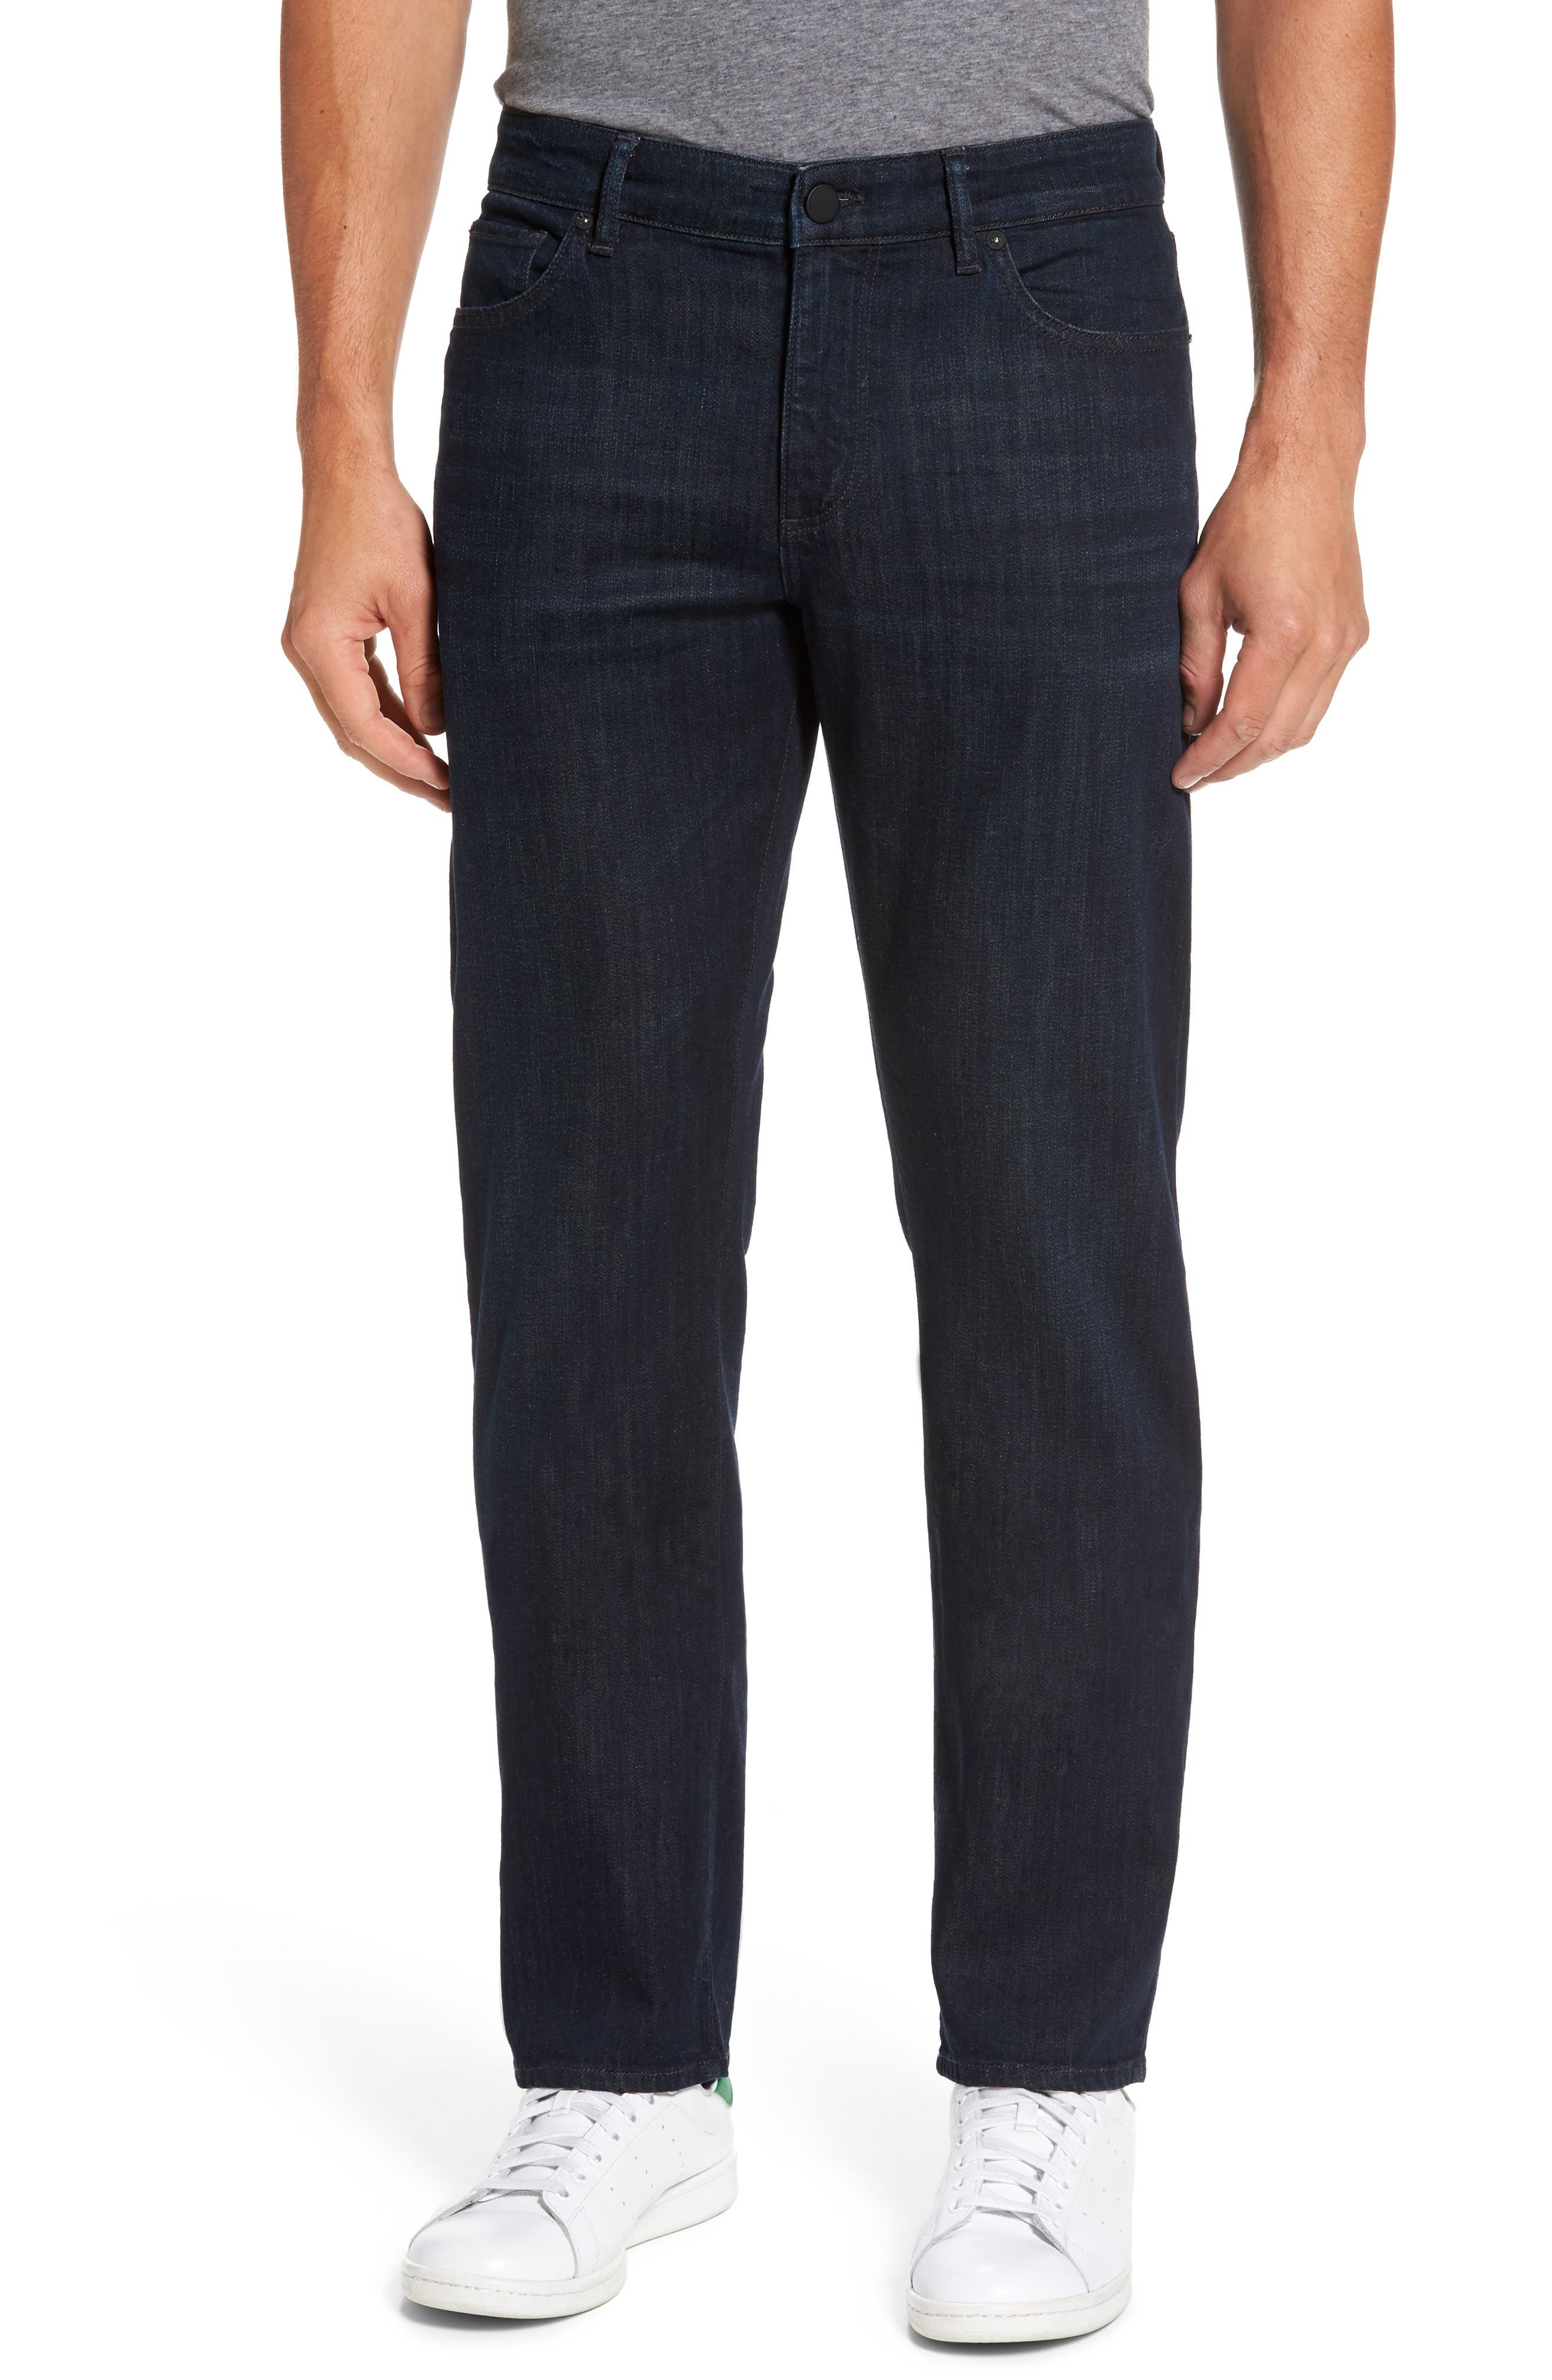 Avery Slim Straight Leg Jeans,                         Main,                         color,